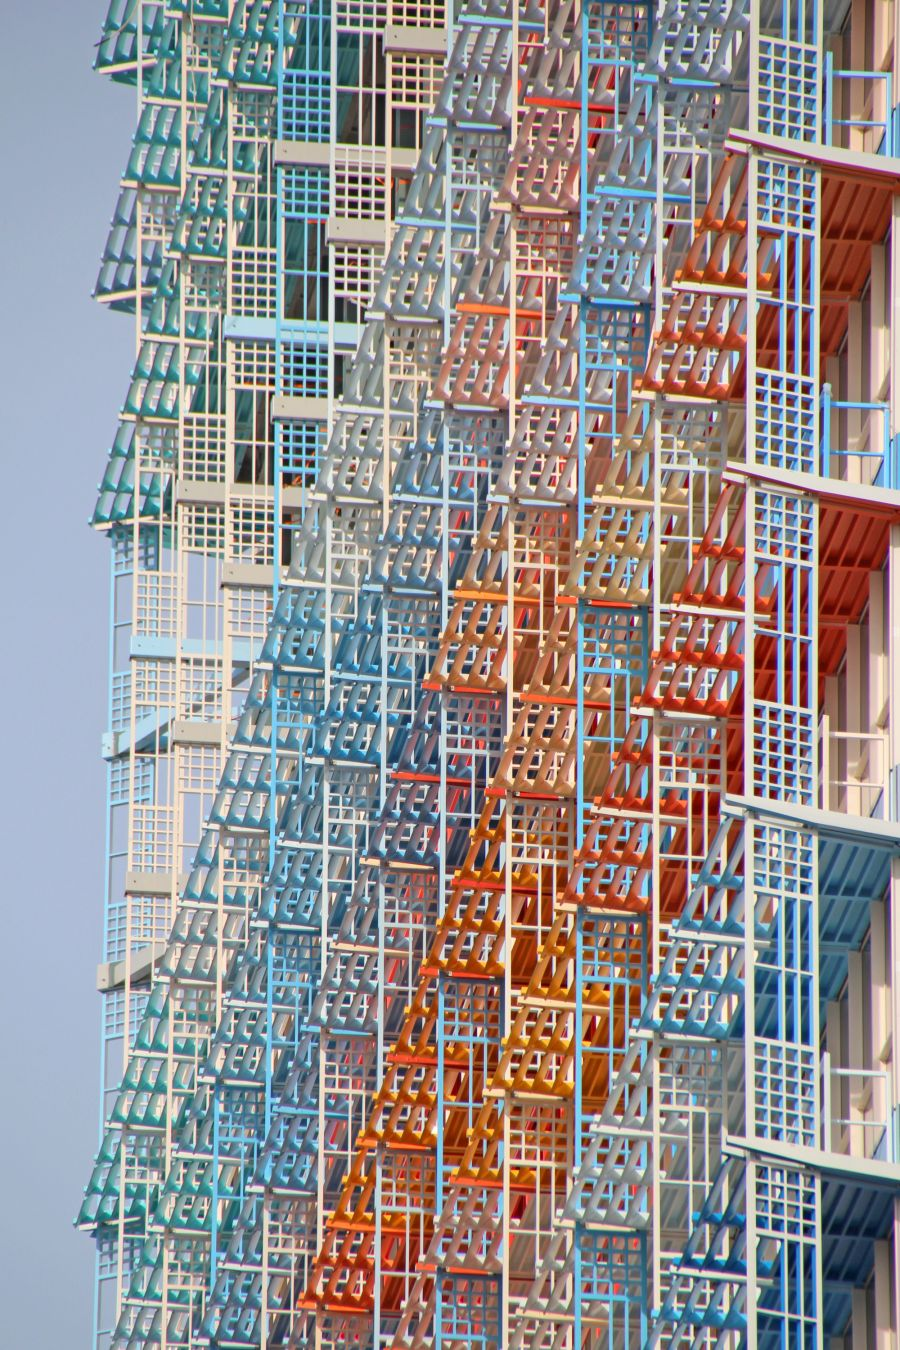 La Marseillaise - Arch. Ateliers Jean Nouvel - Photo : Stéphane Aboudaram WE ARE CONTENT(S)